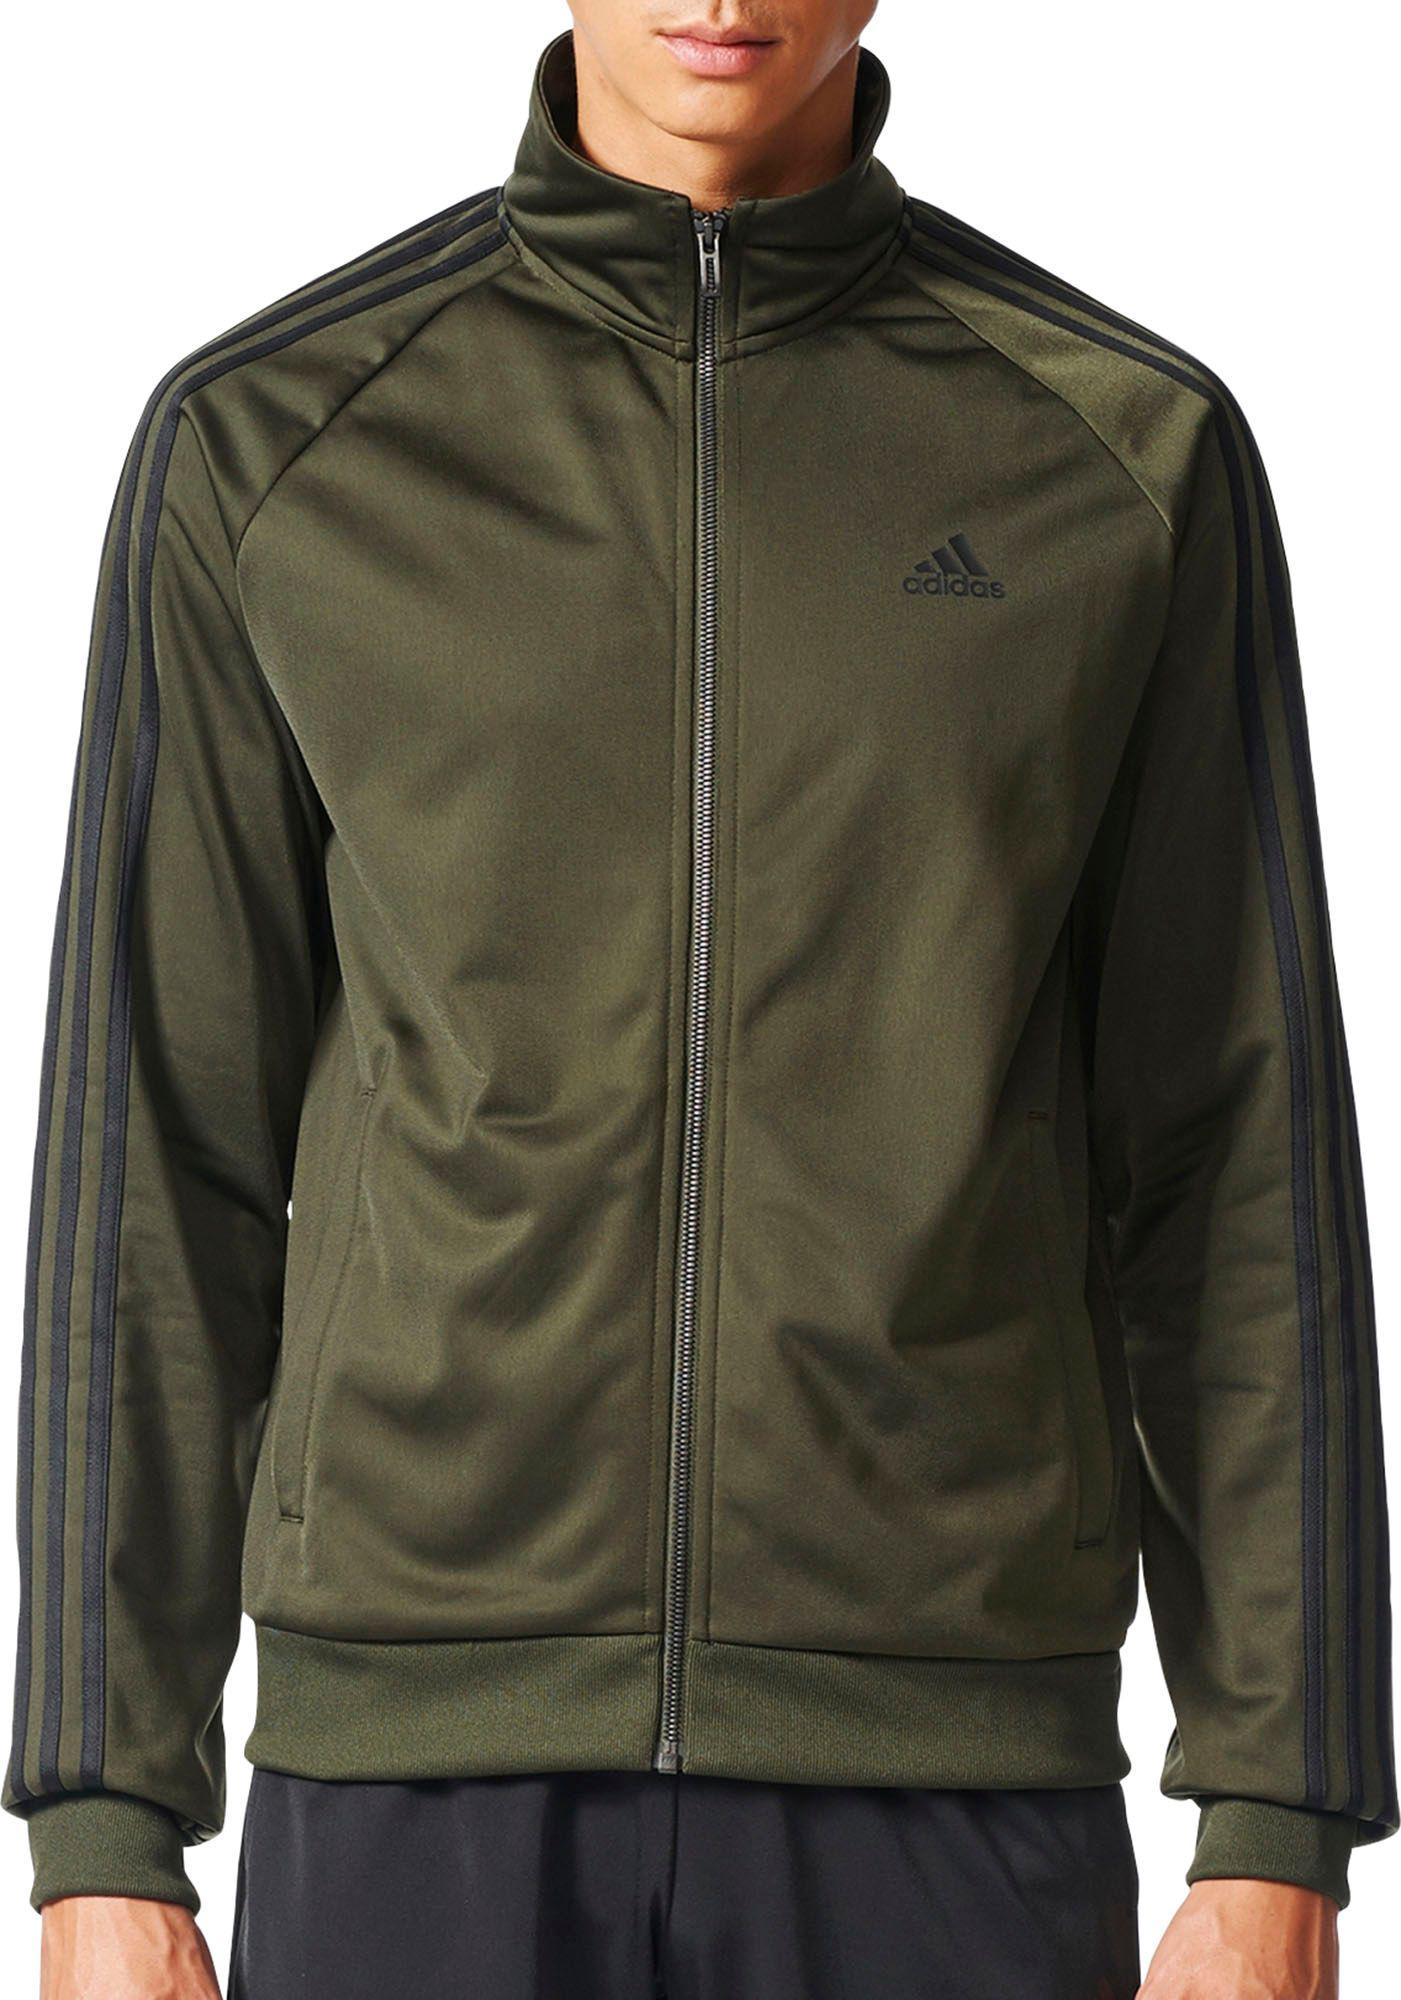 537377732193 Lyst - adidas Essentials 3-stripes Track Jacket in Green for Men